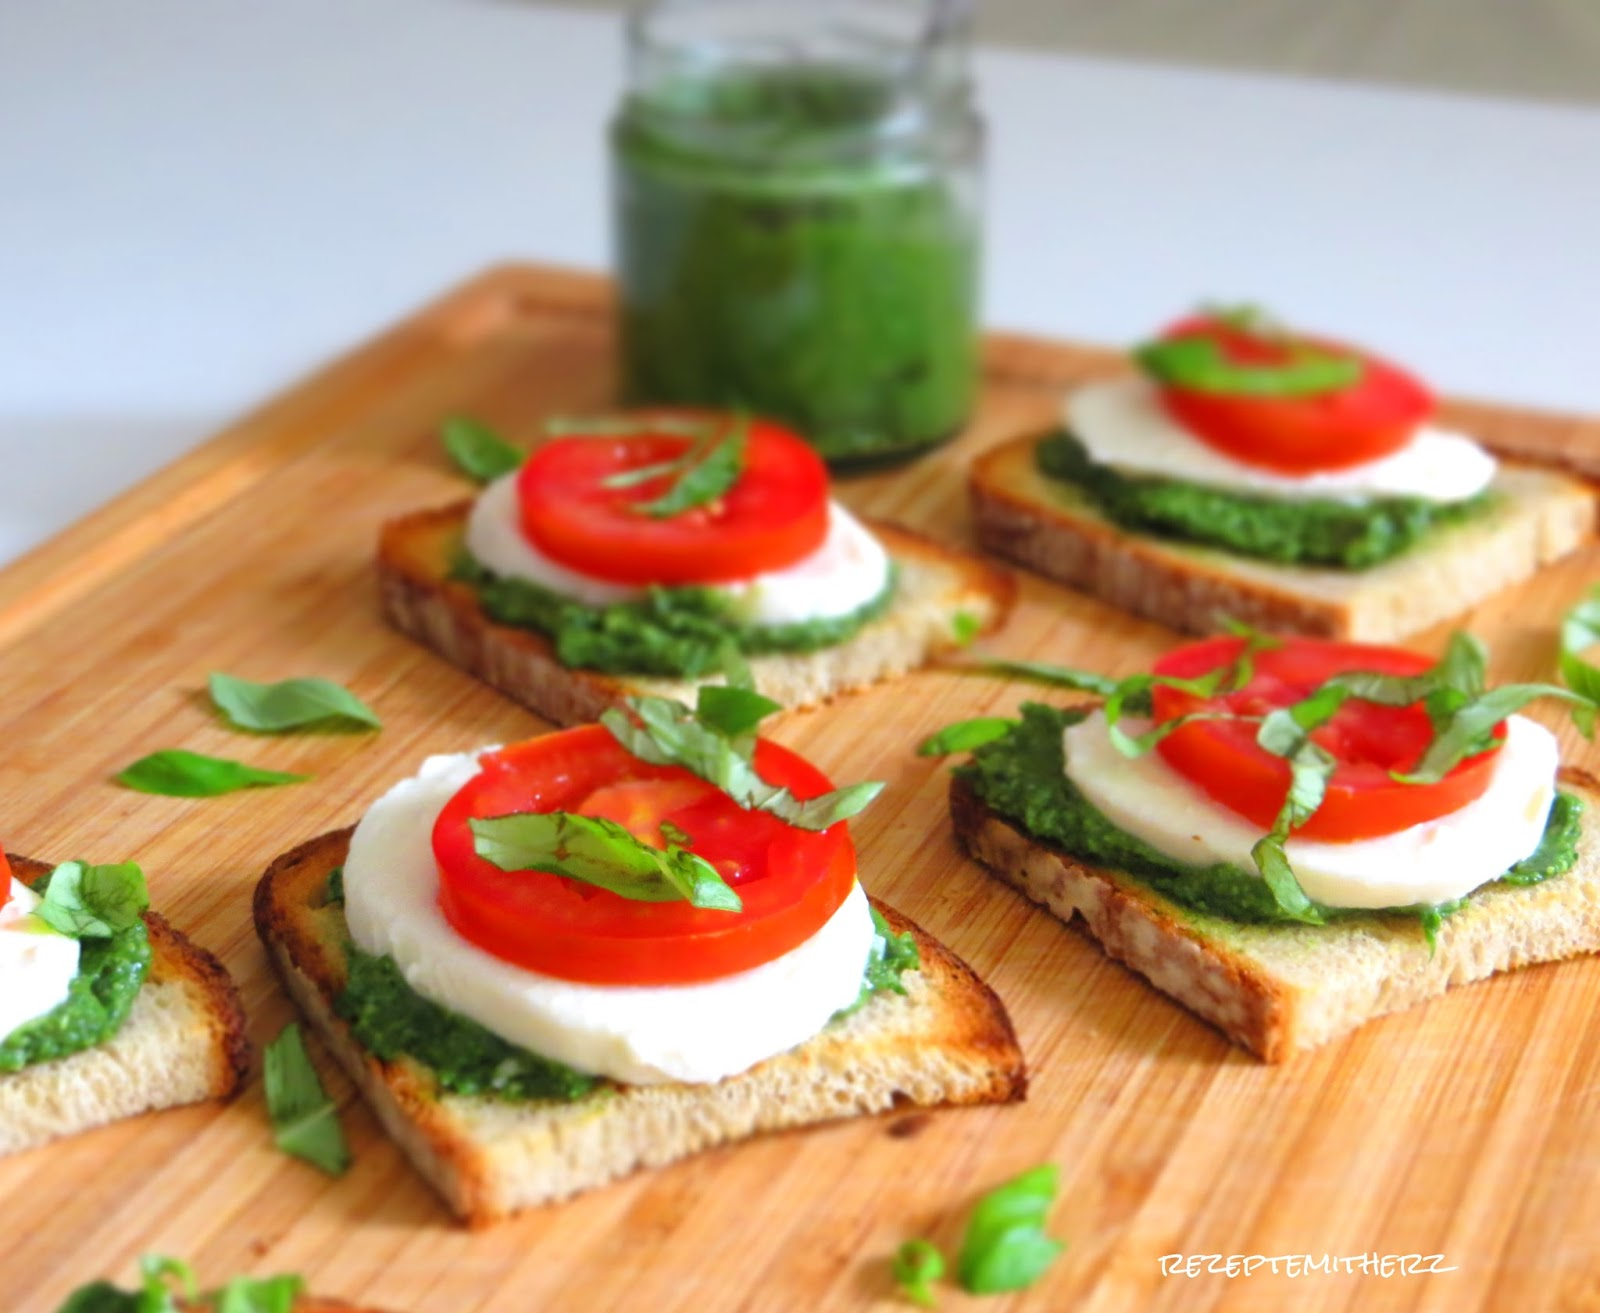 pesto bruschetta thermomix rezepte mit herz thermomix rezept. Black Bedroom Furniture Sets. Home Design Ideas